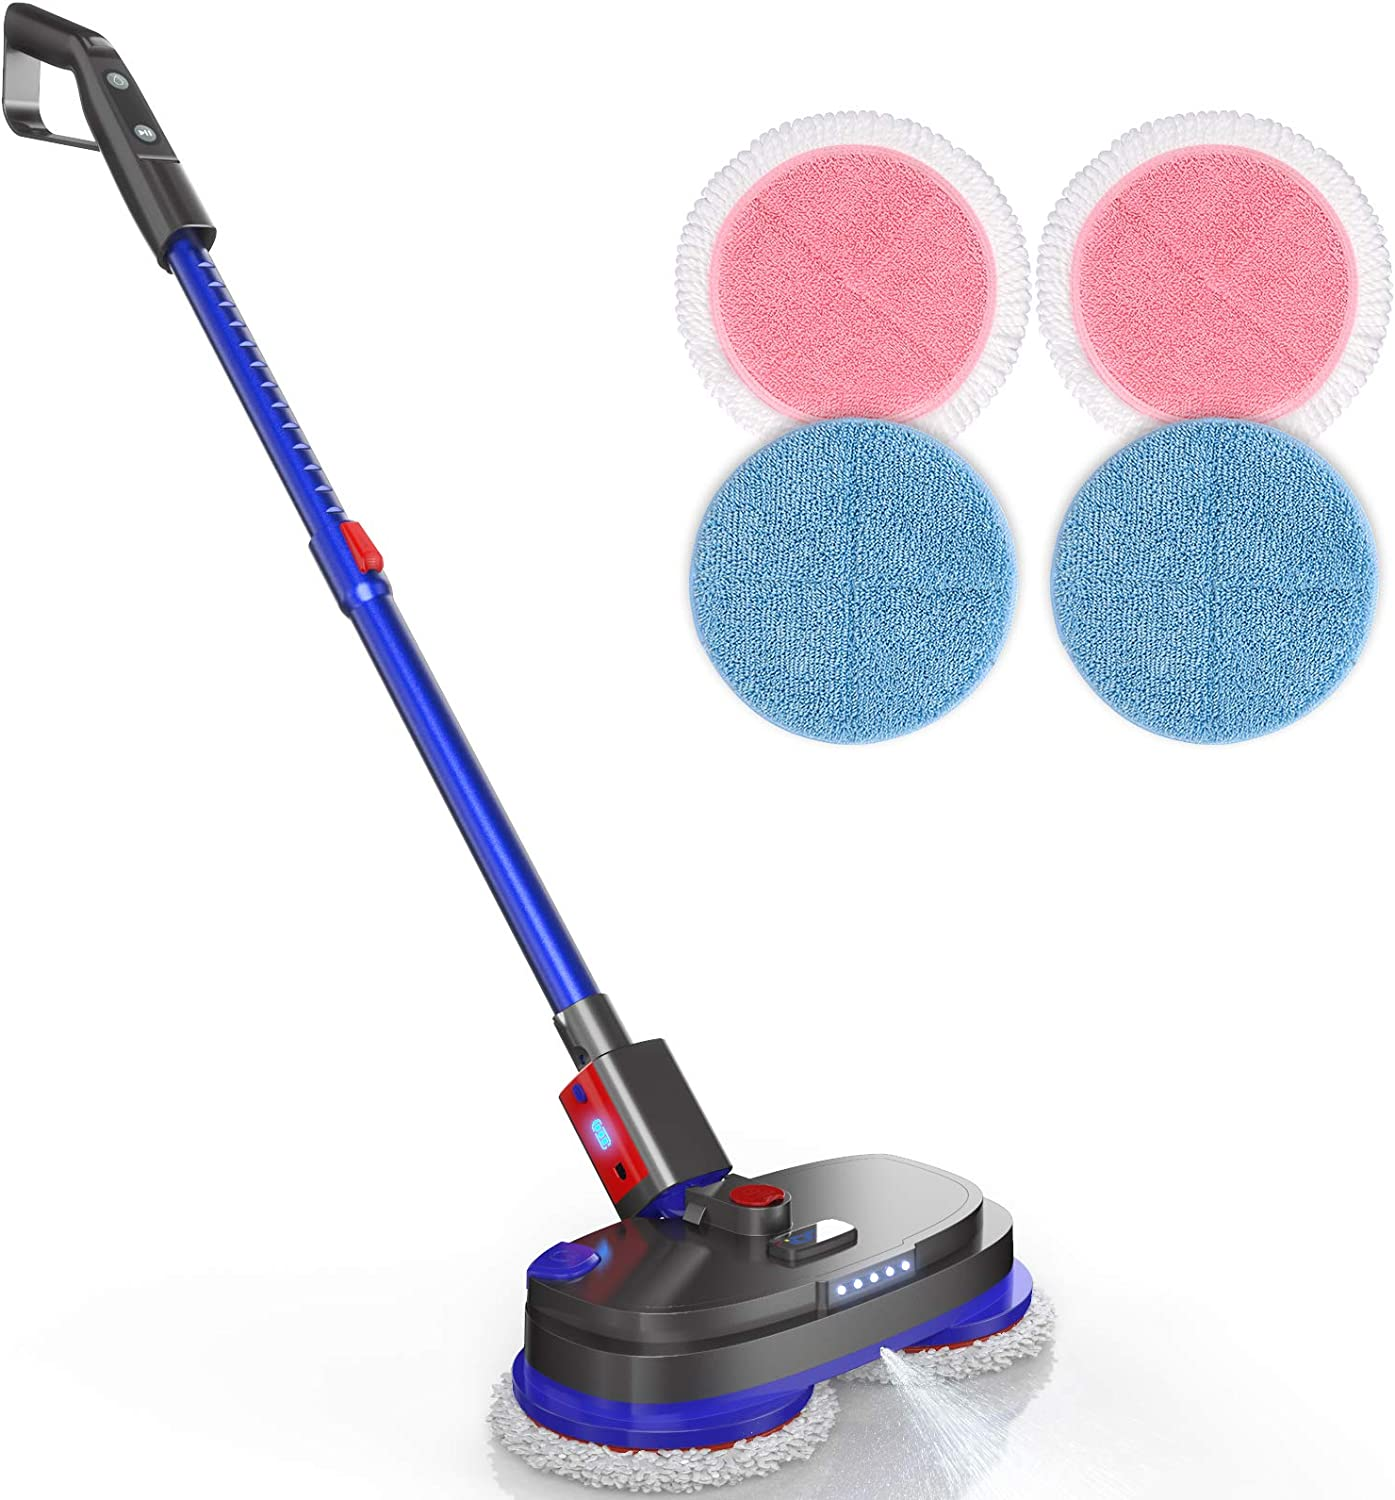 Cordless Electric Spin Mop, Spray Mop for Floor Cleaning with 265R/min Speed, Polisher with Built-in 300ml Water Tank for Hardwood & Tile & Marble & Laminate Floors, Scrubber with LED Headlight: Health & Personal Care